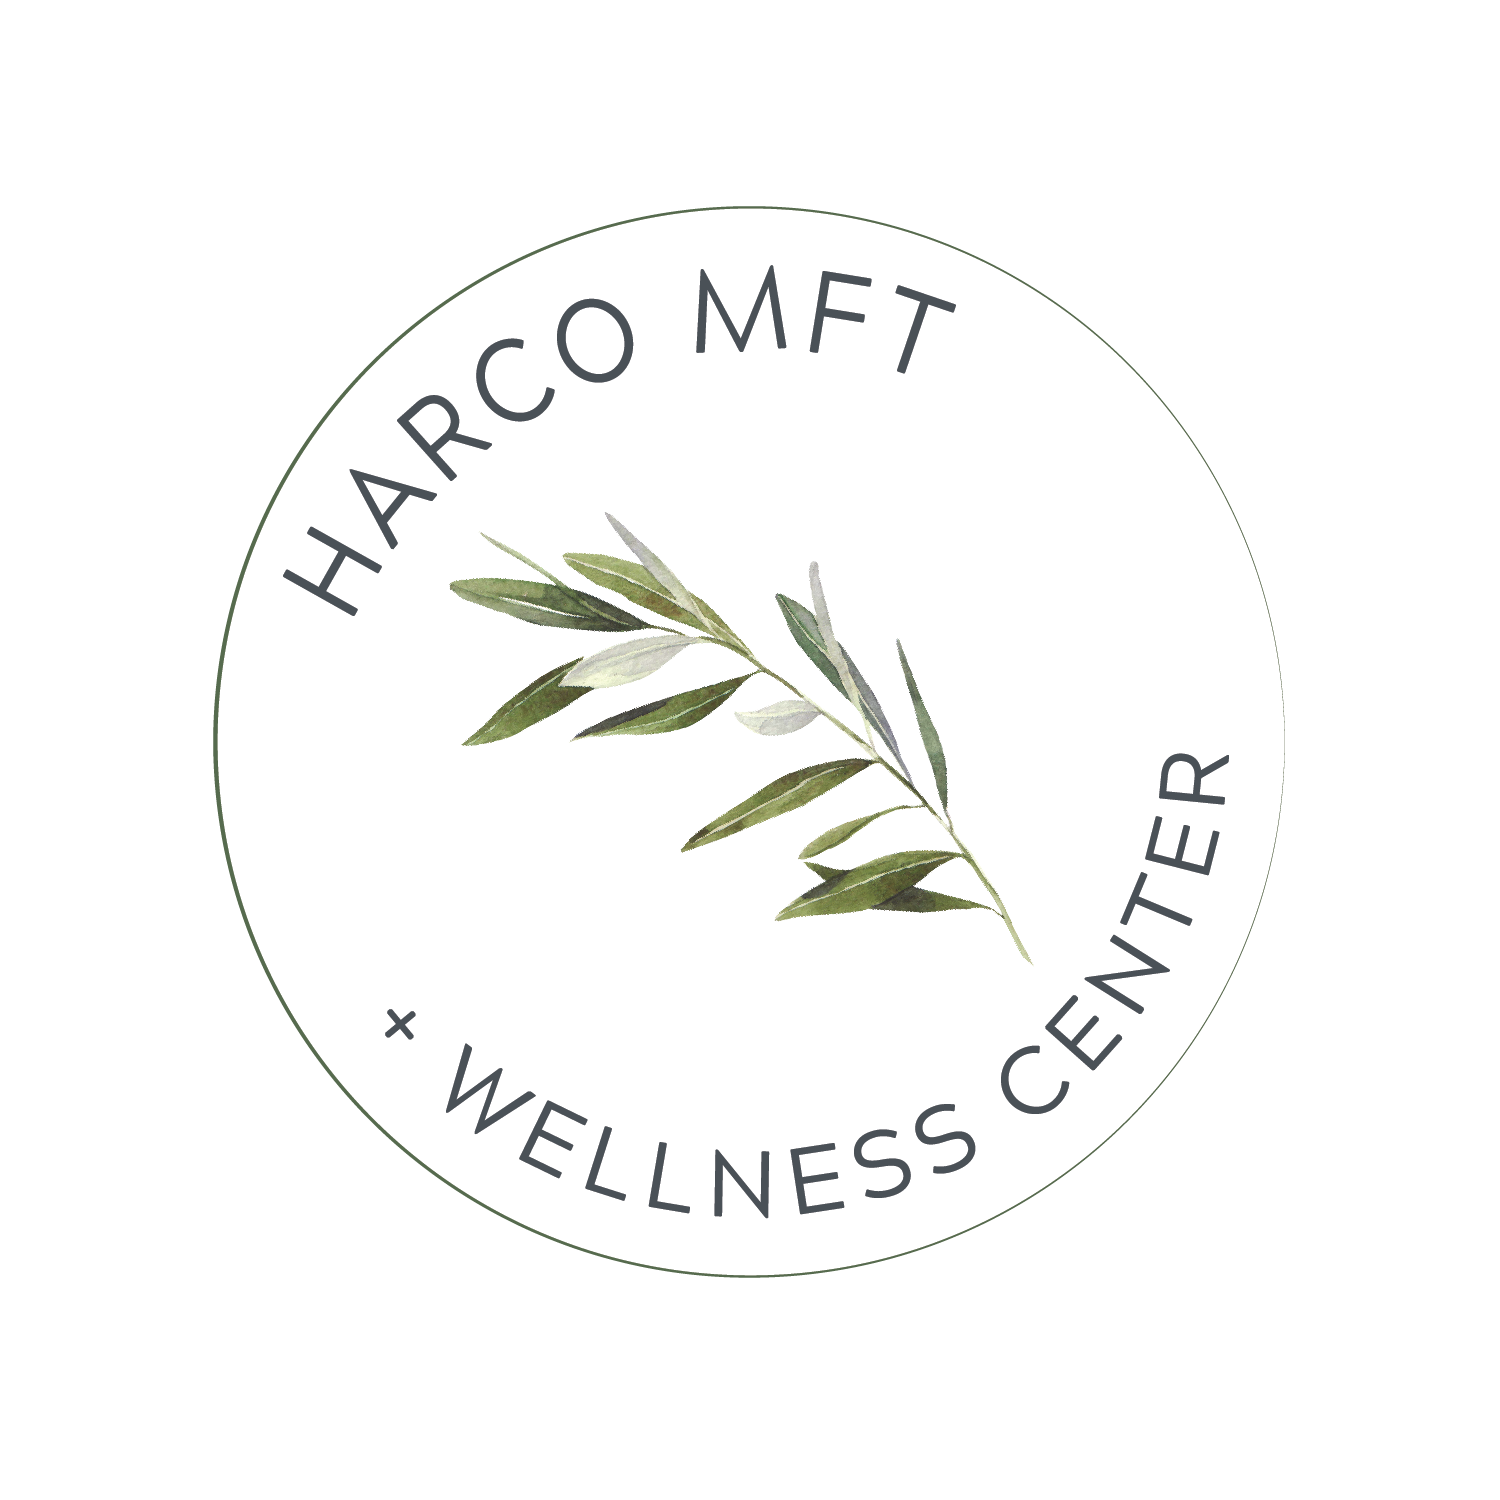 HarCO MFT & Wellness Center